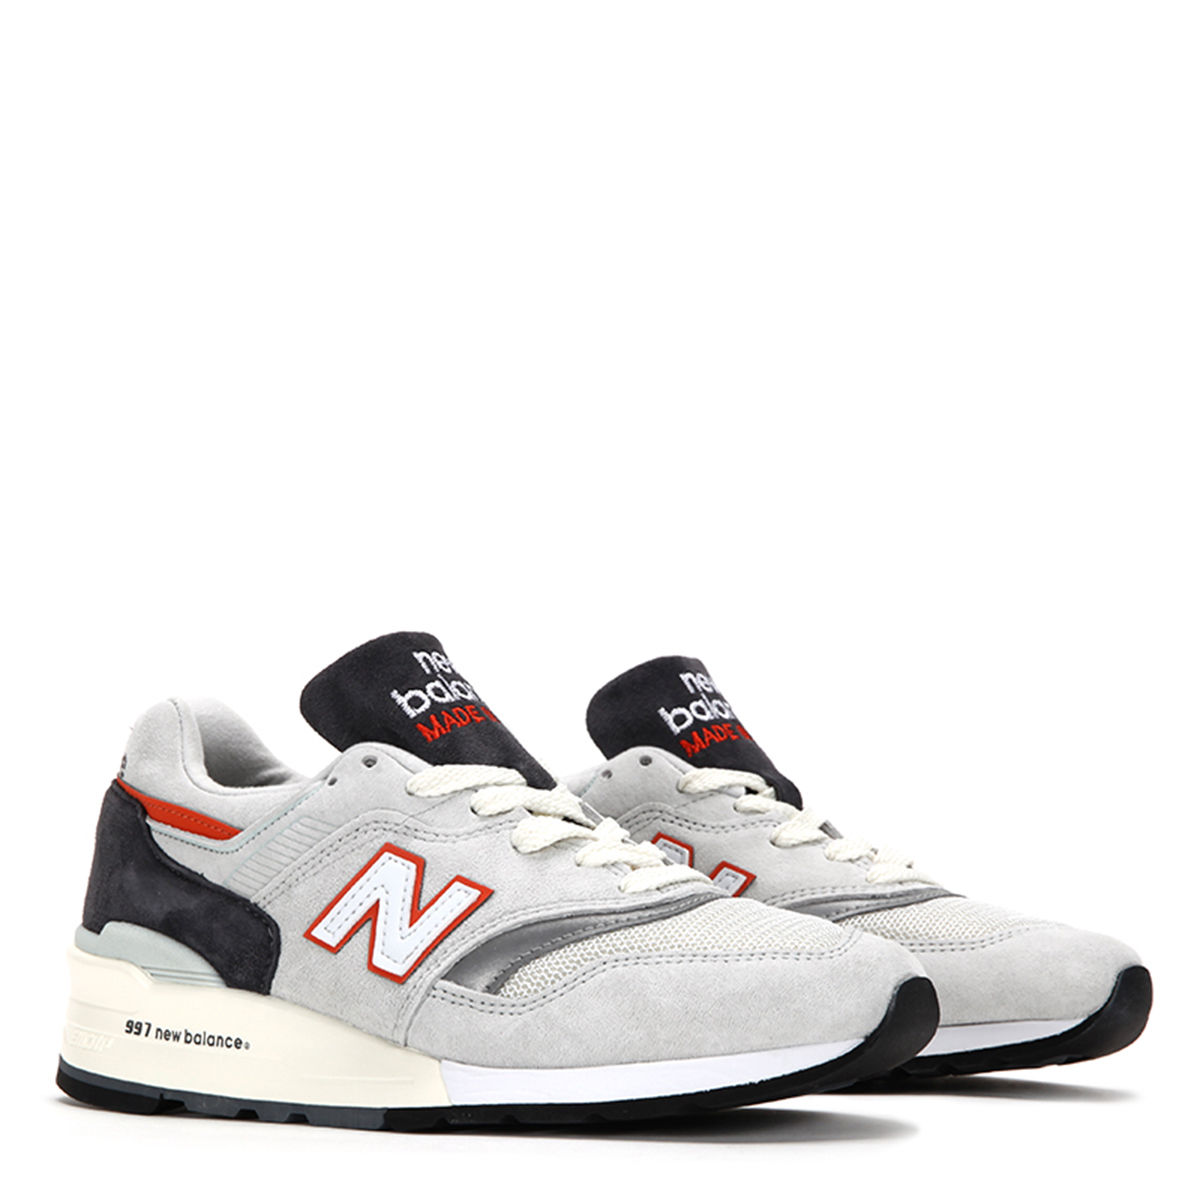 New Balance Men's 997 Made In USA Explore By Sea Sneakers M997CSEA WHT GRY ORNG by